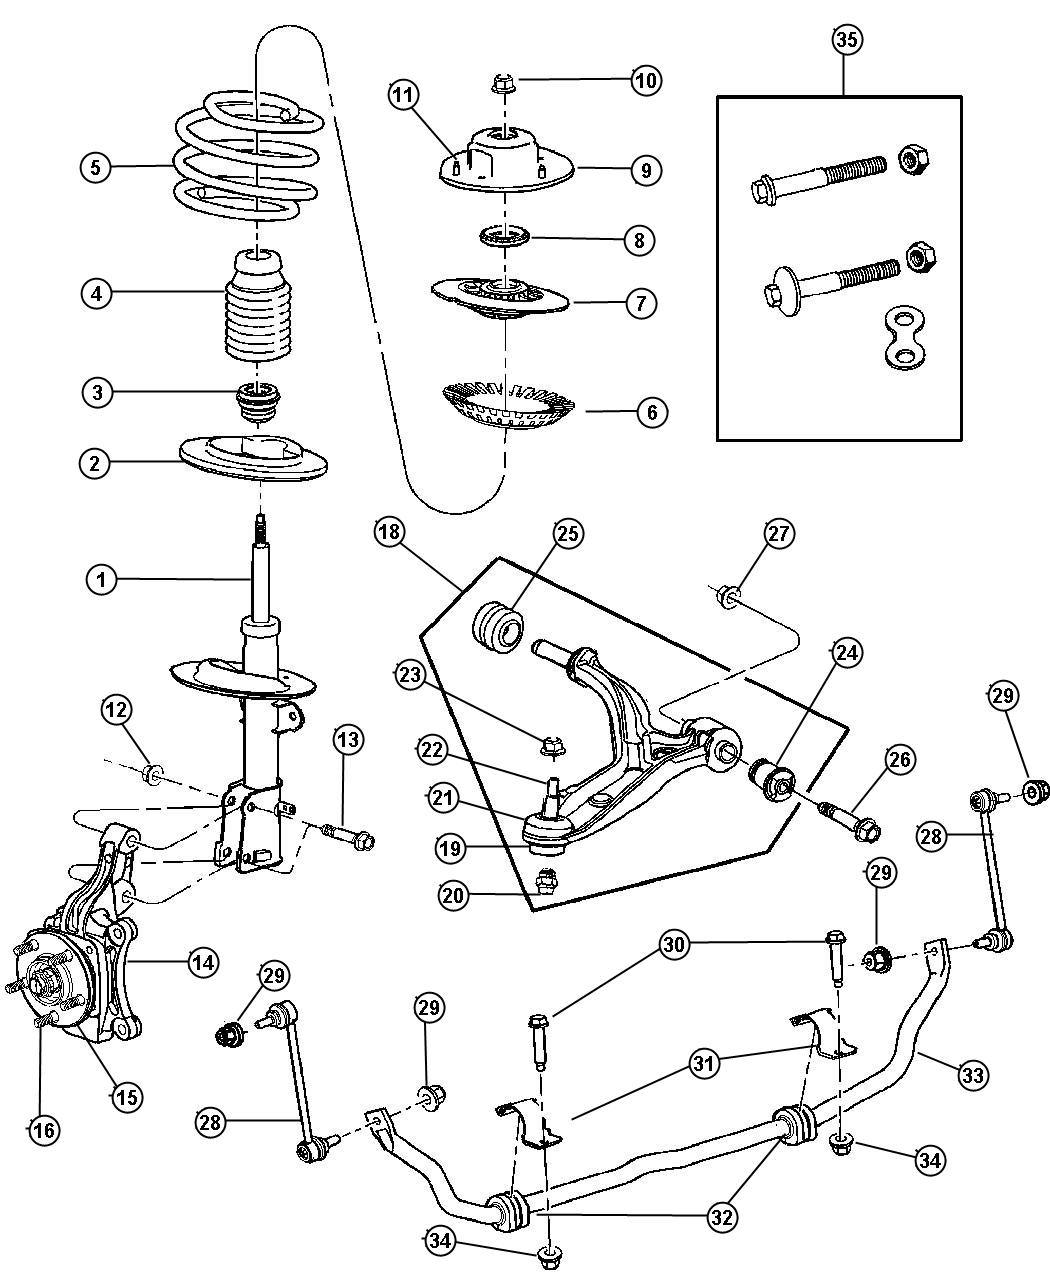 00i72410 dodge voyager radio wiring diagram free pictu wiring library